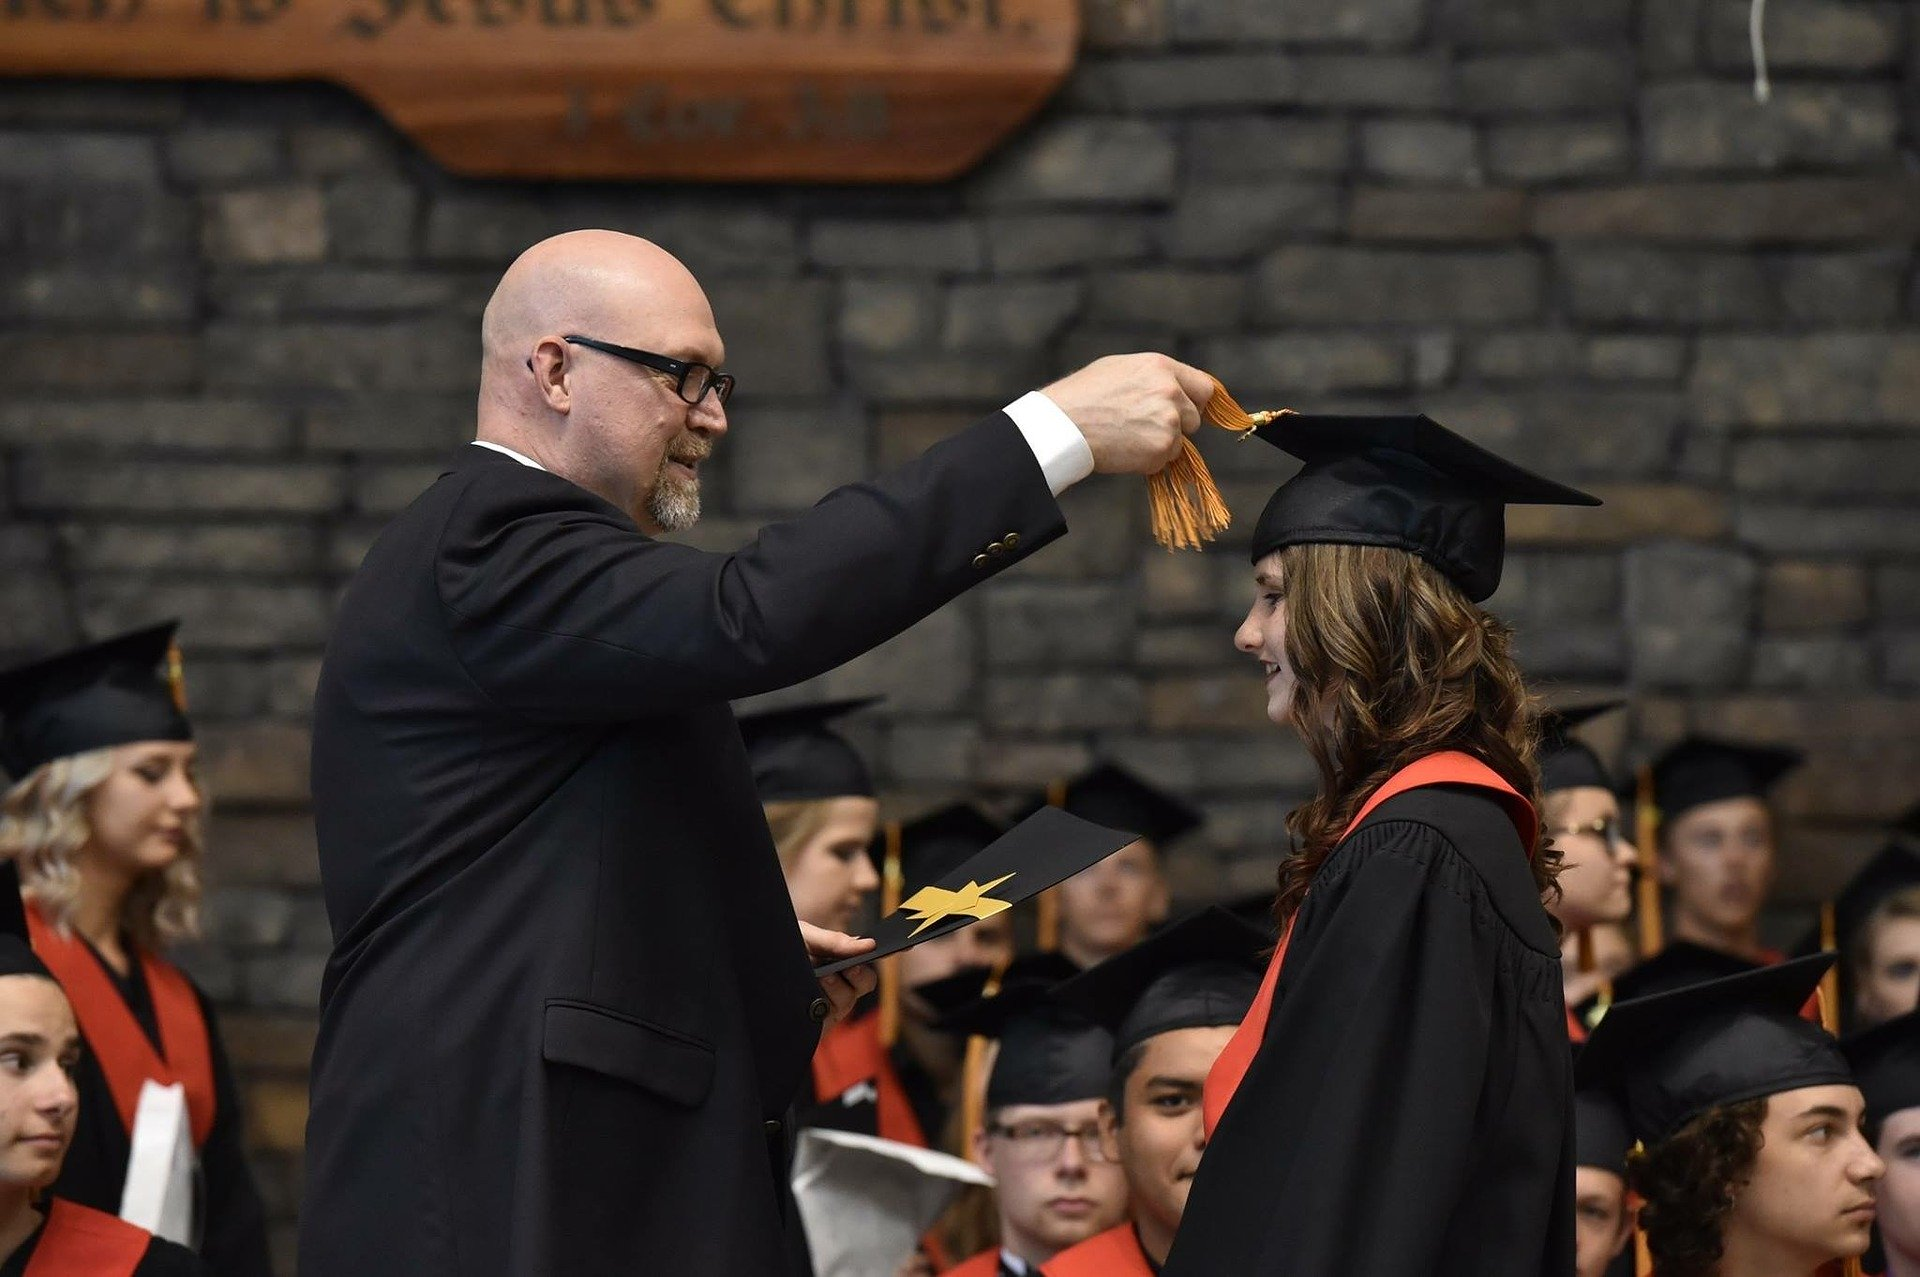 father helping daughter with graduation cap